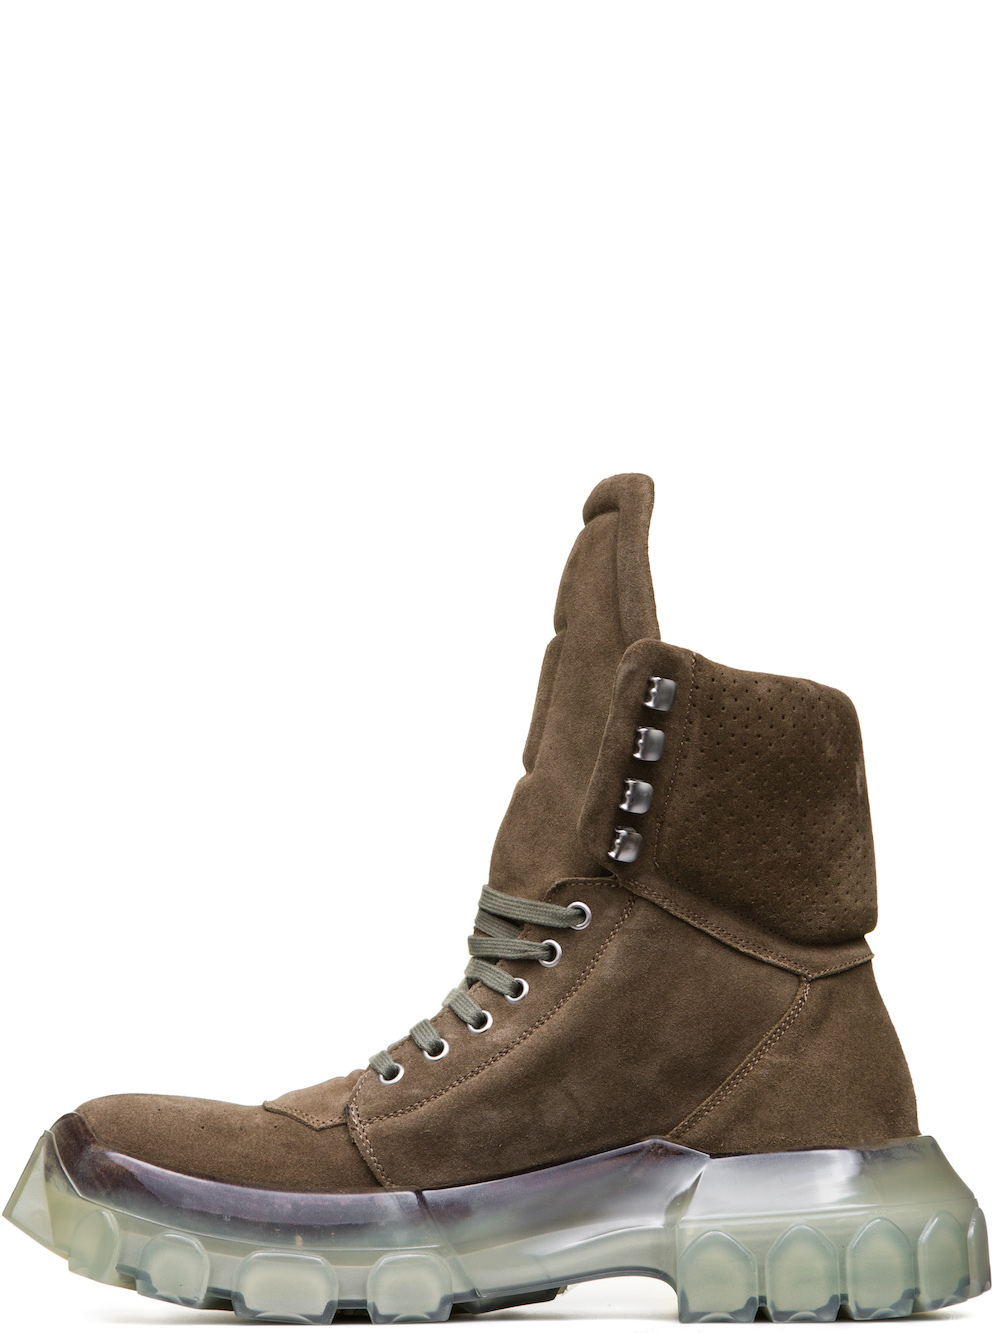 RICK OWENS FW18 SISYPHUS OFF-THE-RUNWAY TRACTOR DUNK BOOTS IN DUST GREY SUEDE COW LEATHER